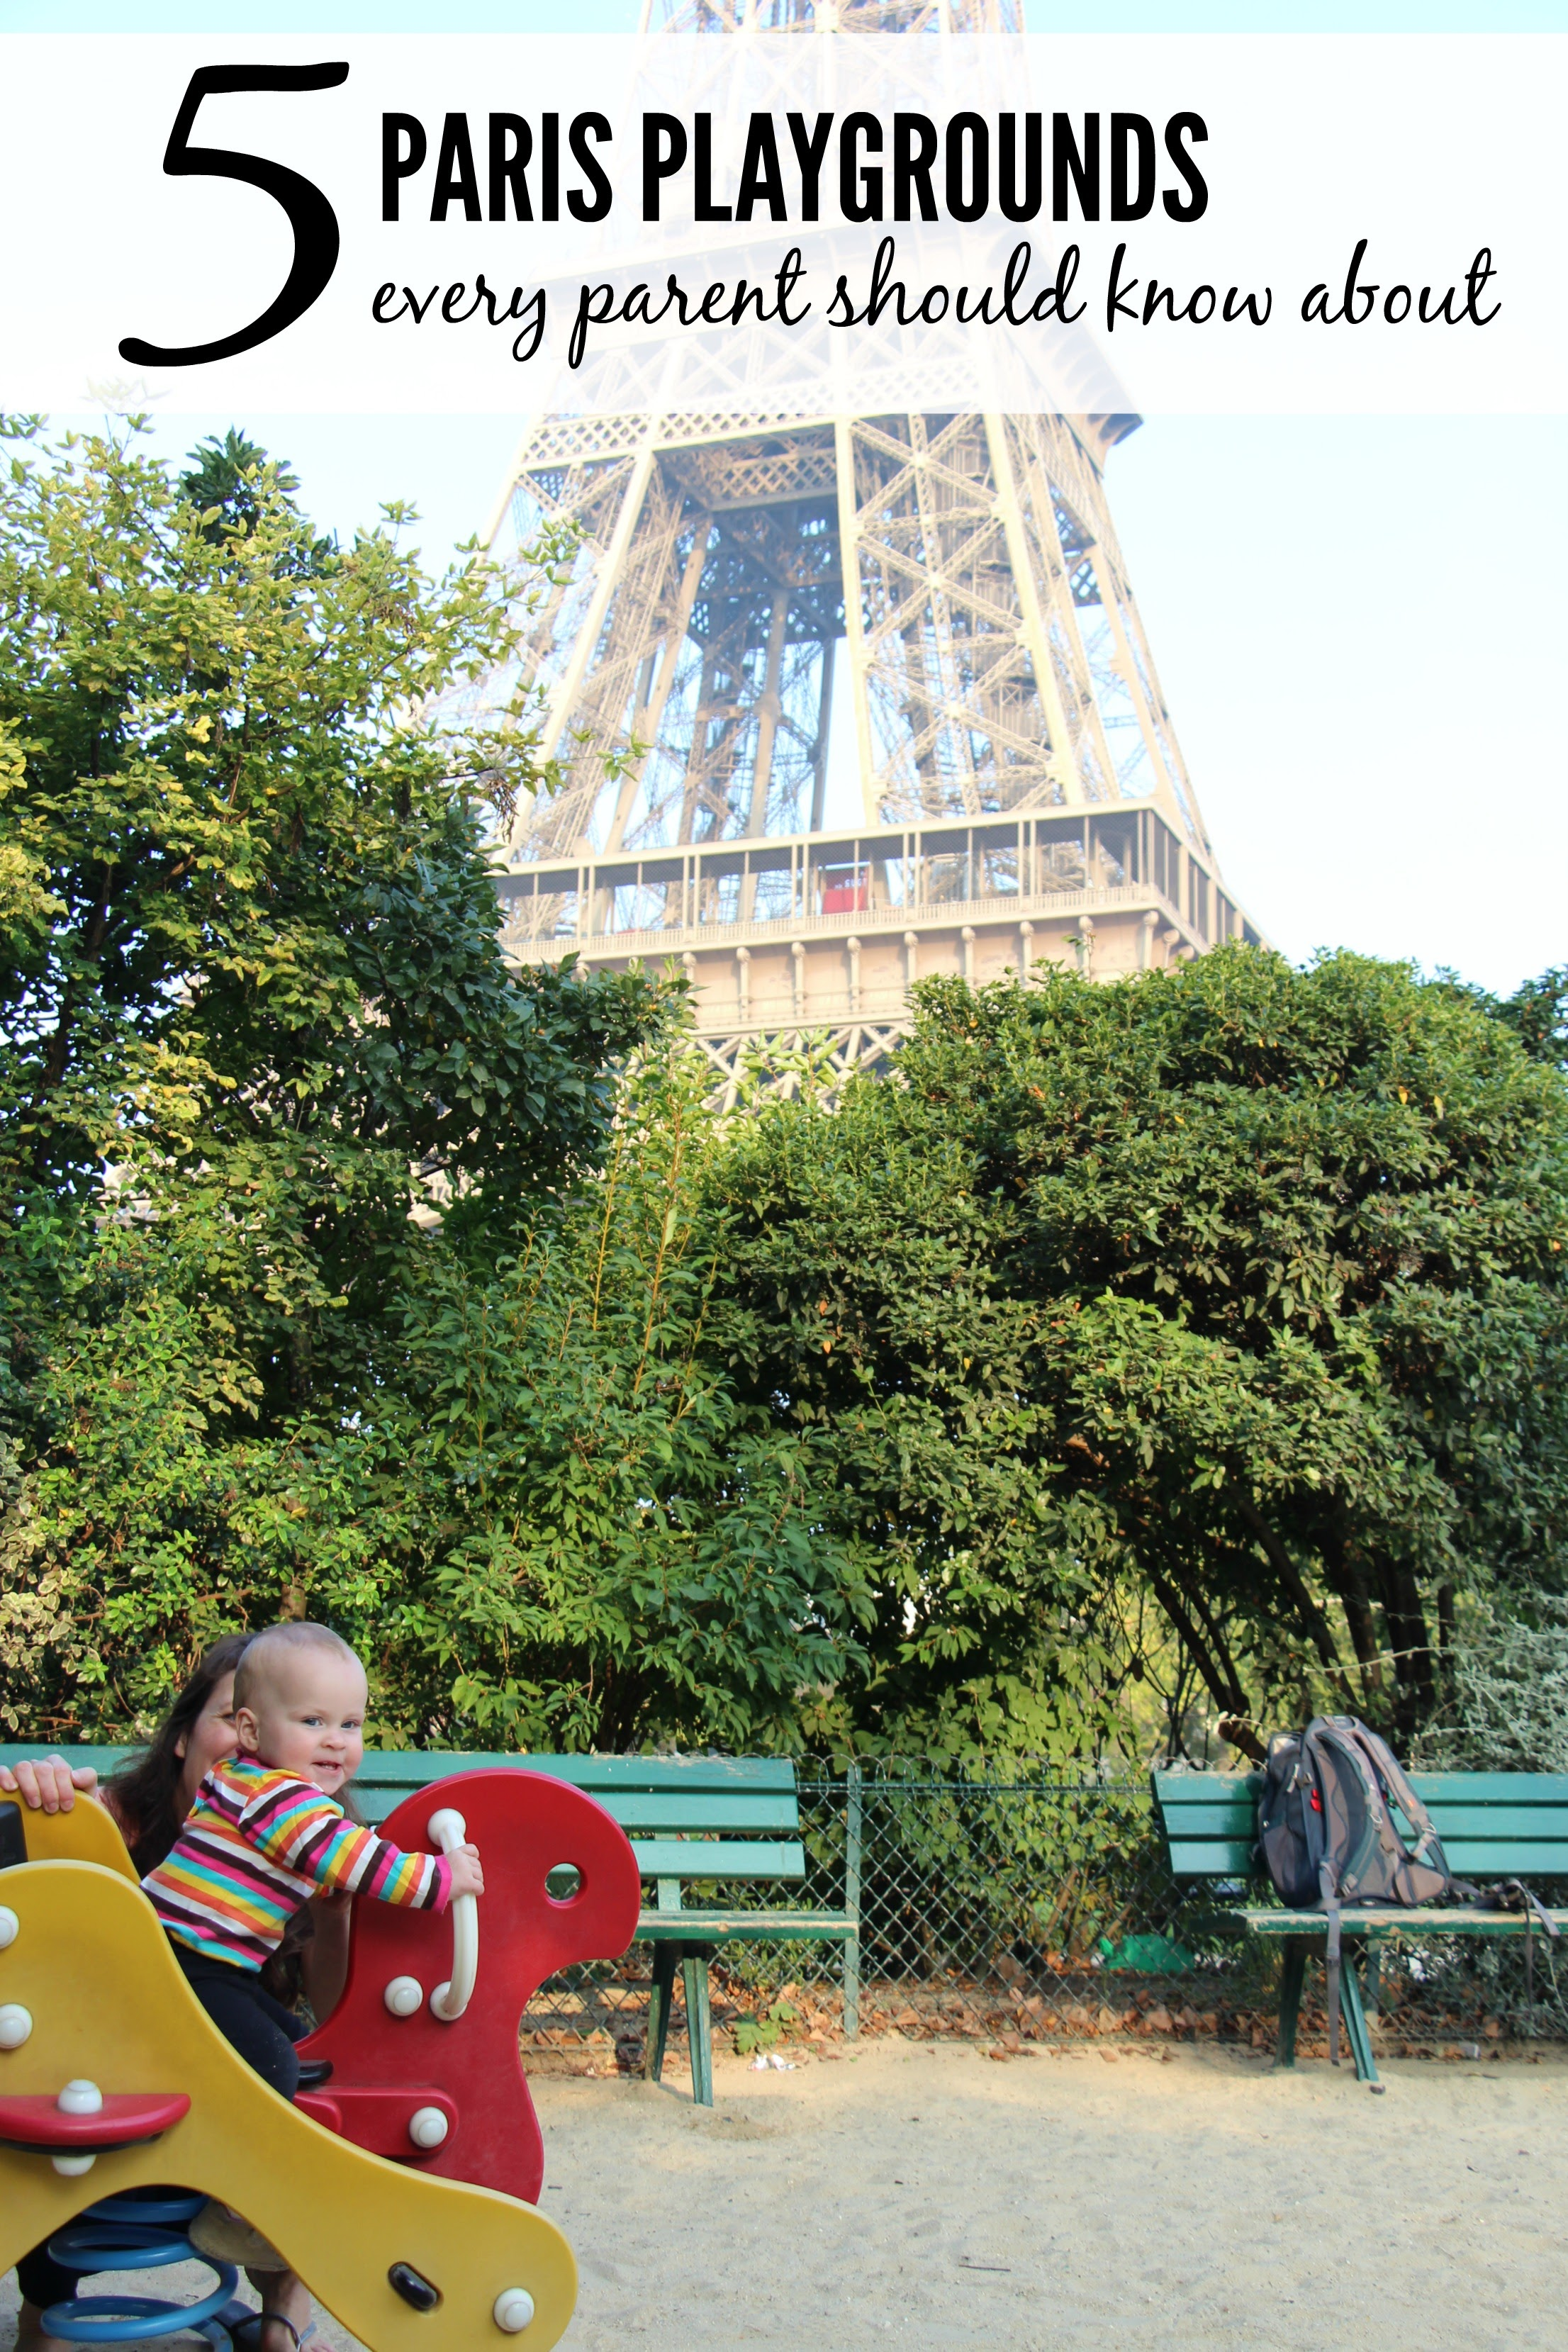 Going to Paris with a baby or toddler? Read this post first to know where to find all the best playgrounds & play areas around Paris! #babytravel #travelwithbaby #paris #parisfrance #travelwithchildren #toddlertravel